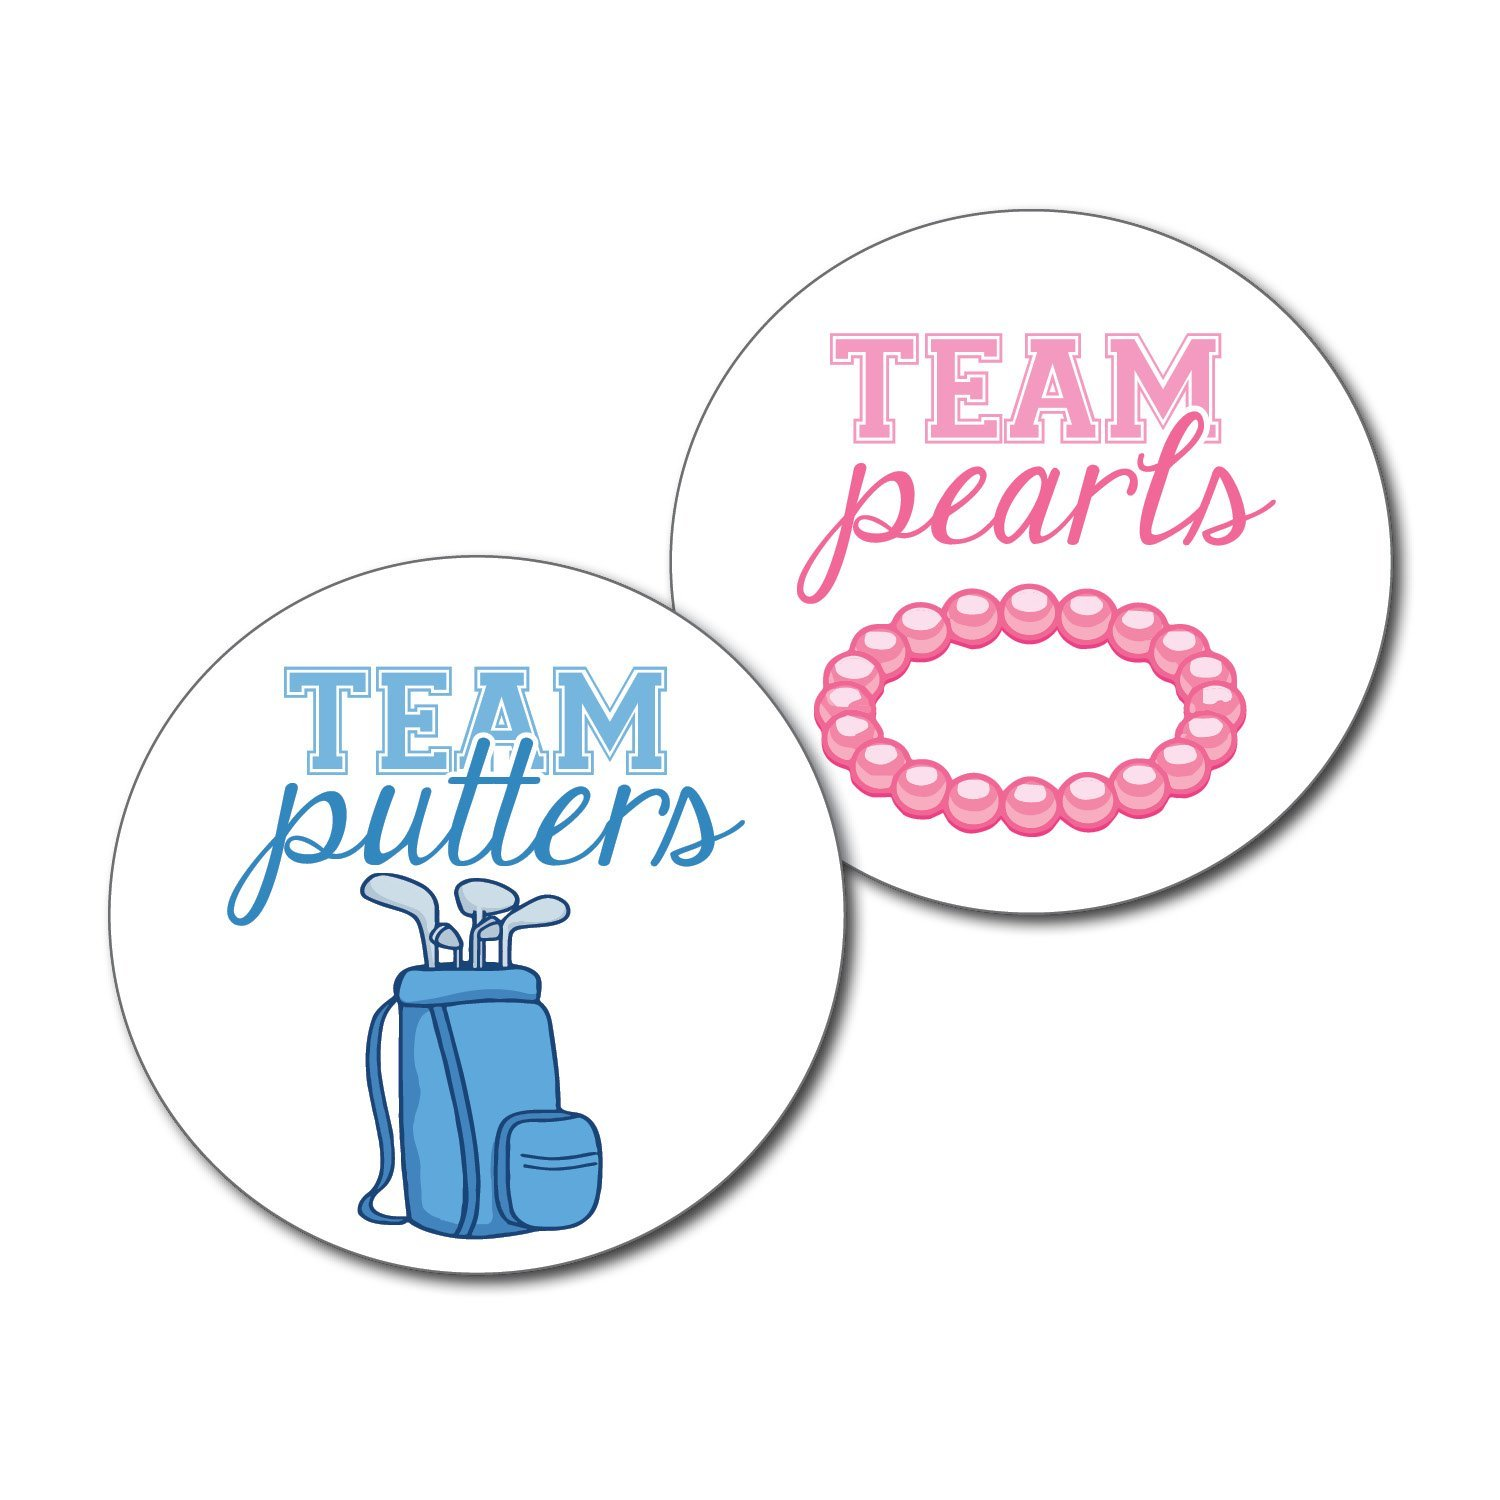 2.5'' Set of 36 Golf Team Putters & Team Pearls Gender Reveal Party Stickers - Pink & Blue, Boy or Girl